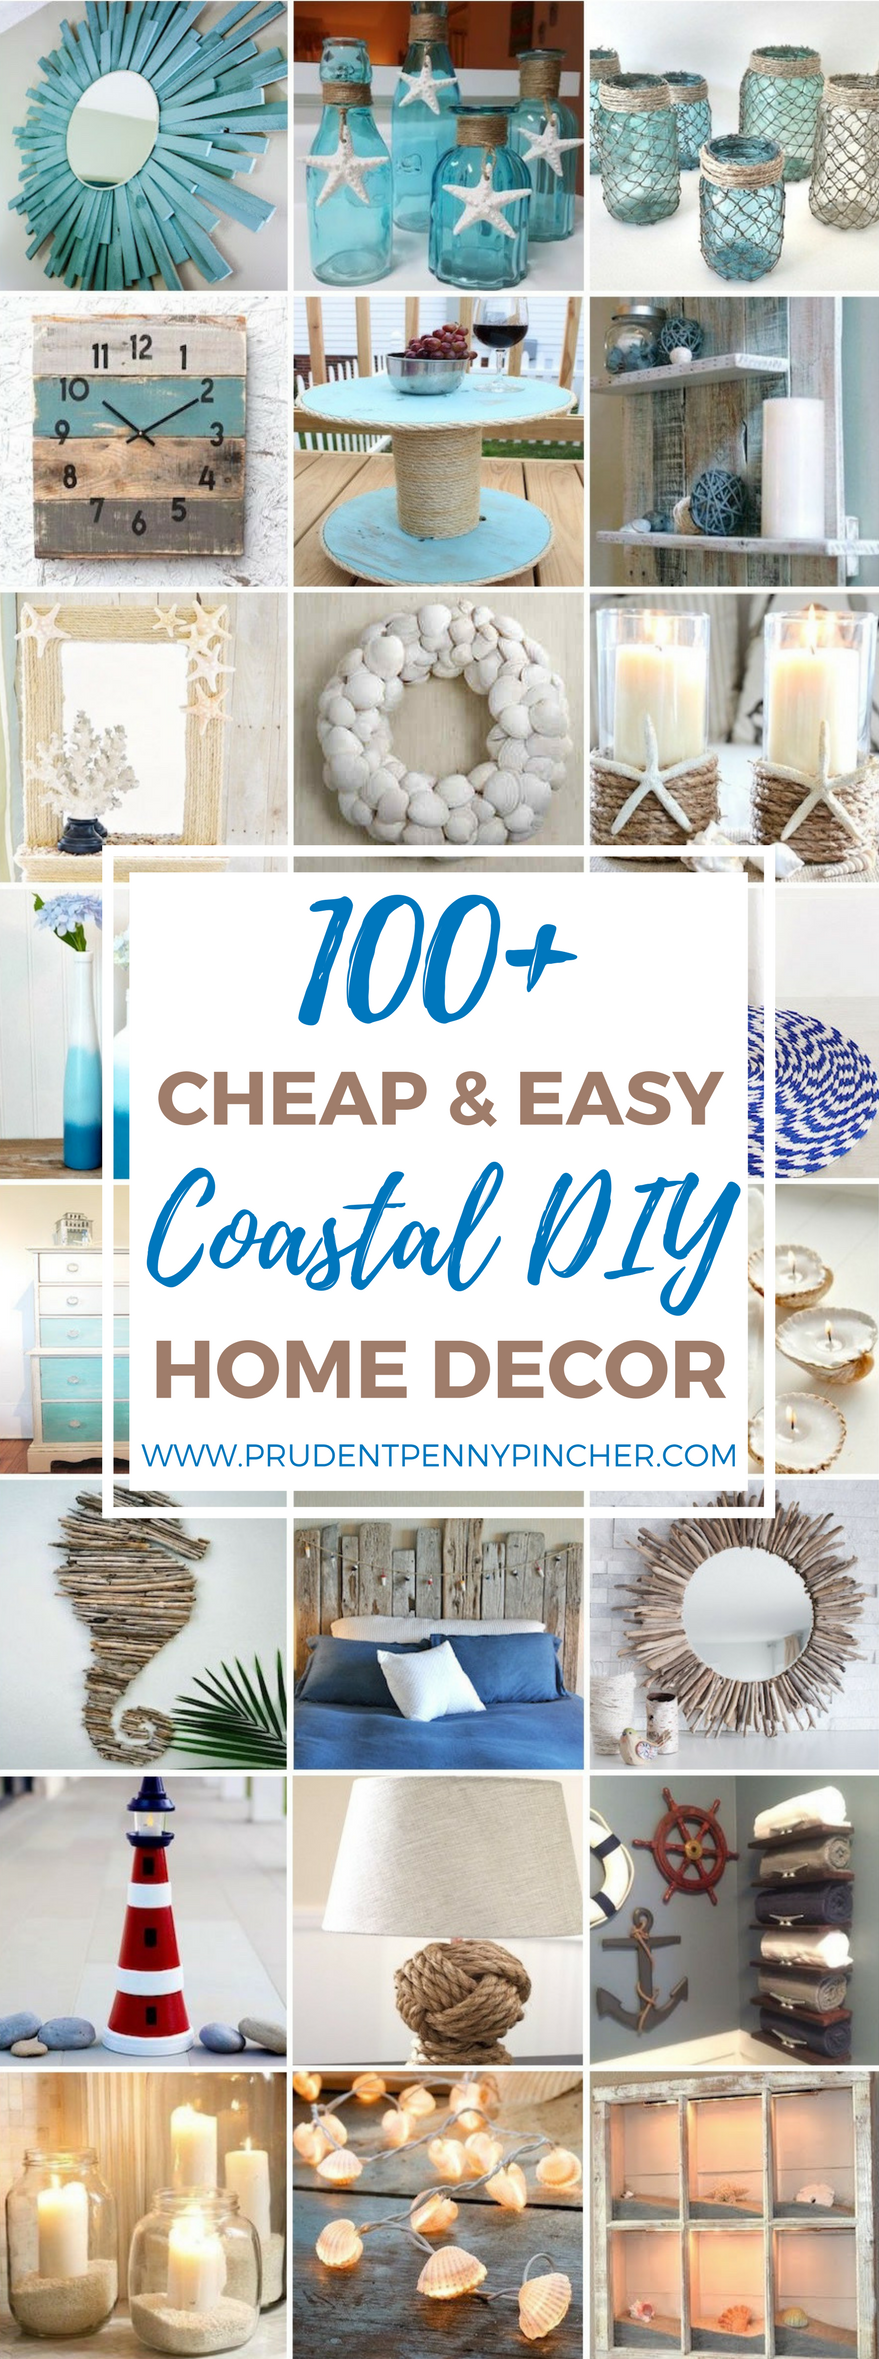 Diy home decor ideas from dollar tree stores for Bargain home decor